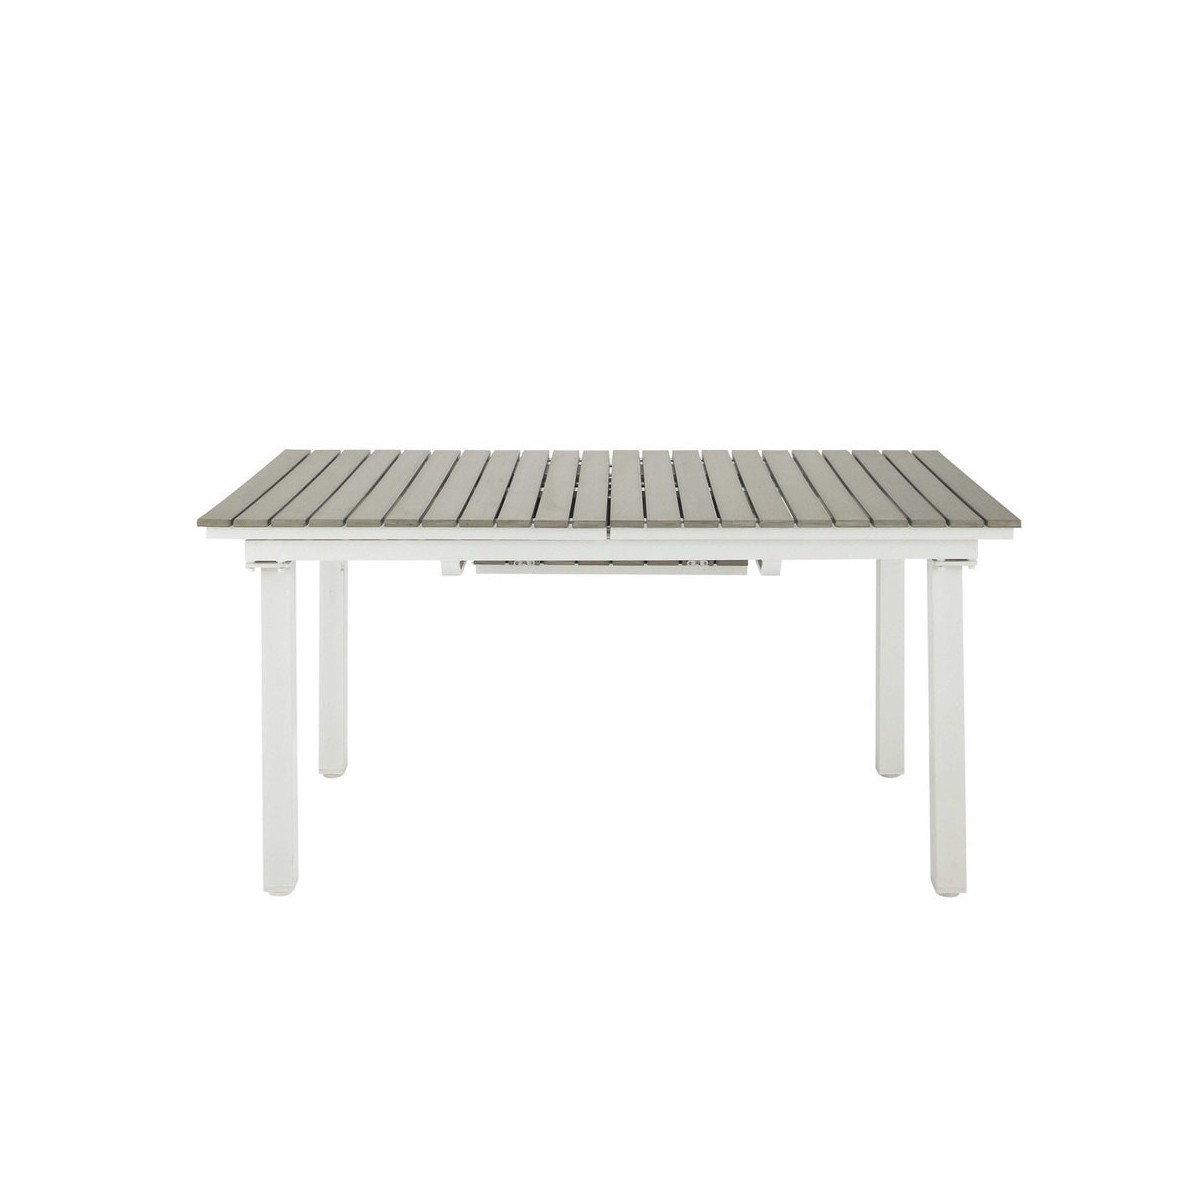 Best table de jardin plastique imitation bois contemporary for Table de jardin en bois